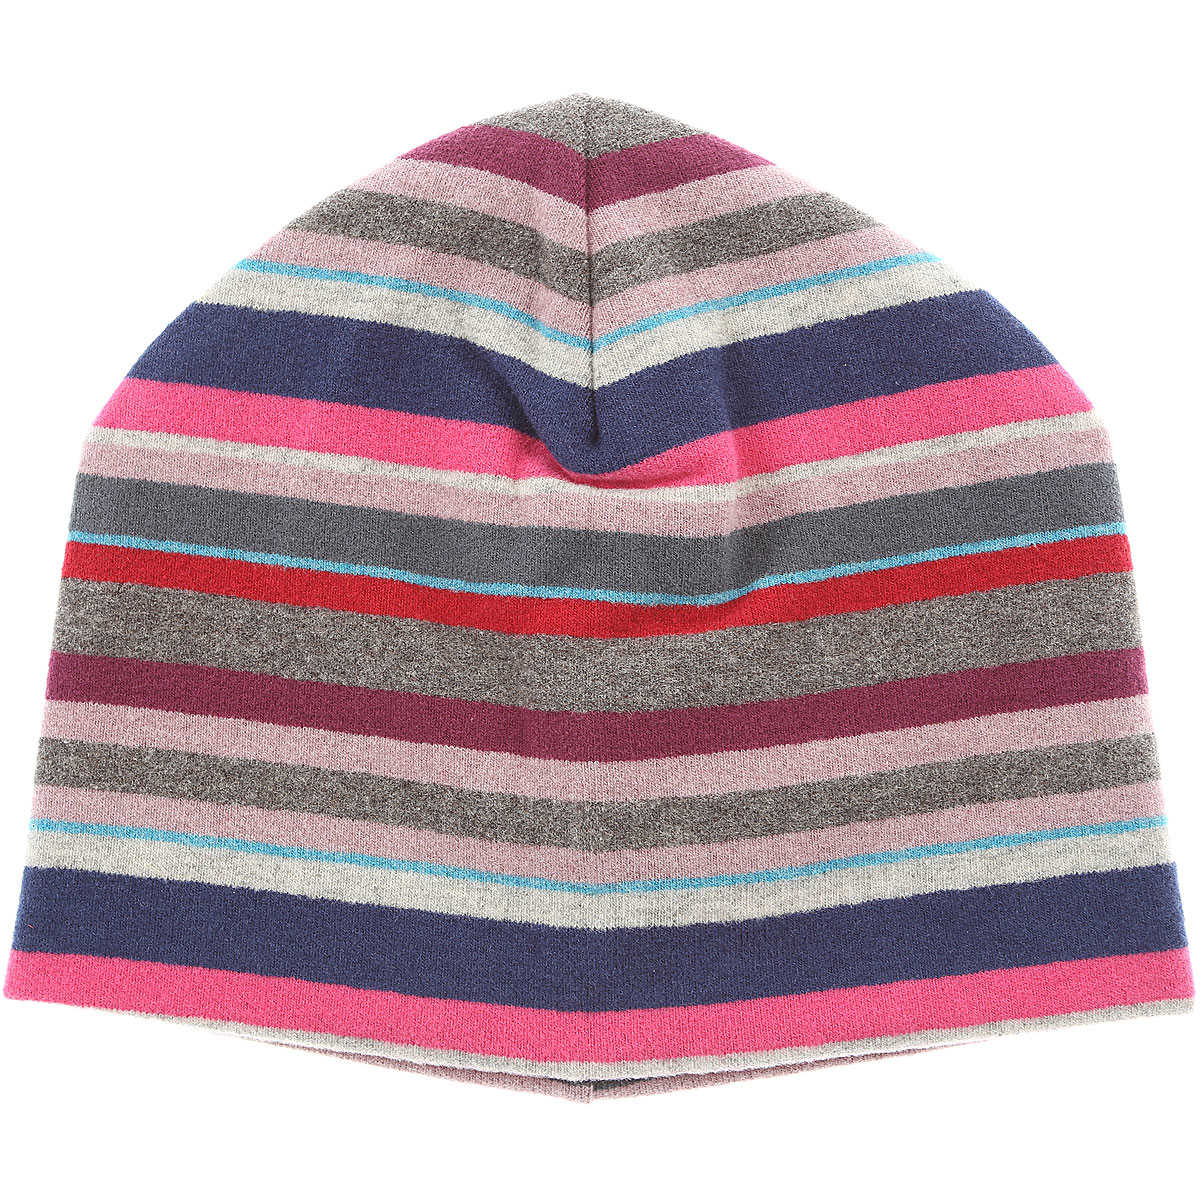 Gallo Baby Hats for Girls in Outlet Grey USA - GOOFASH